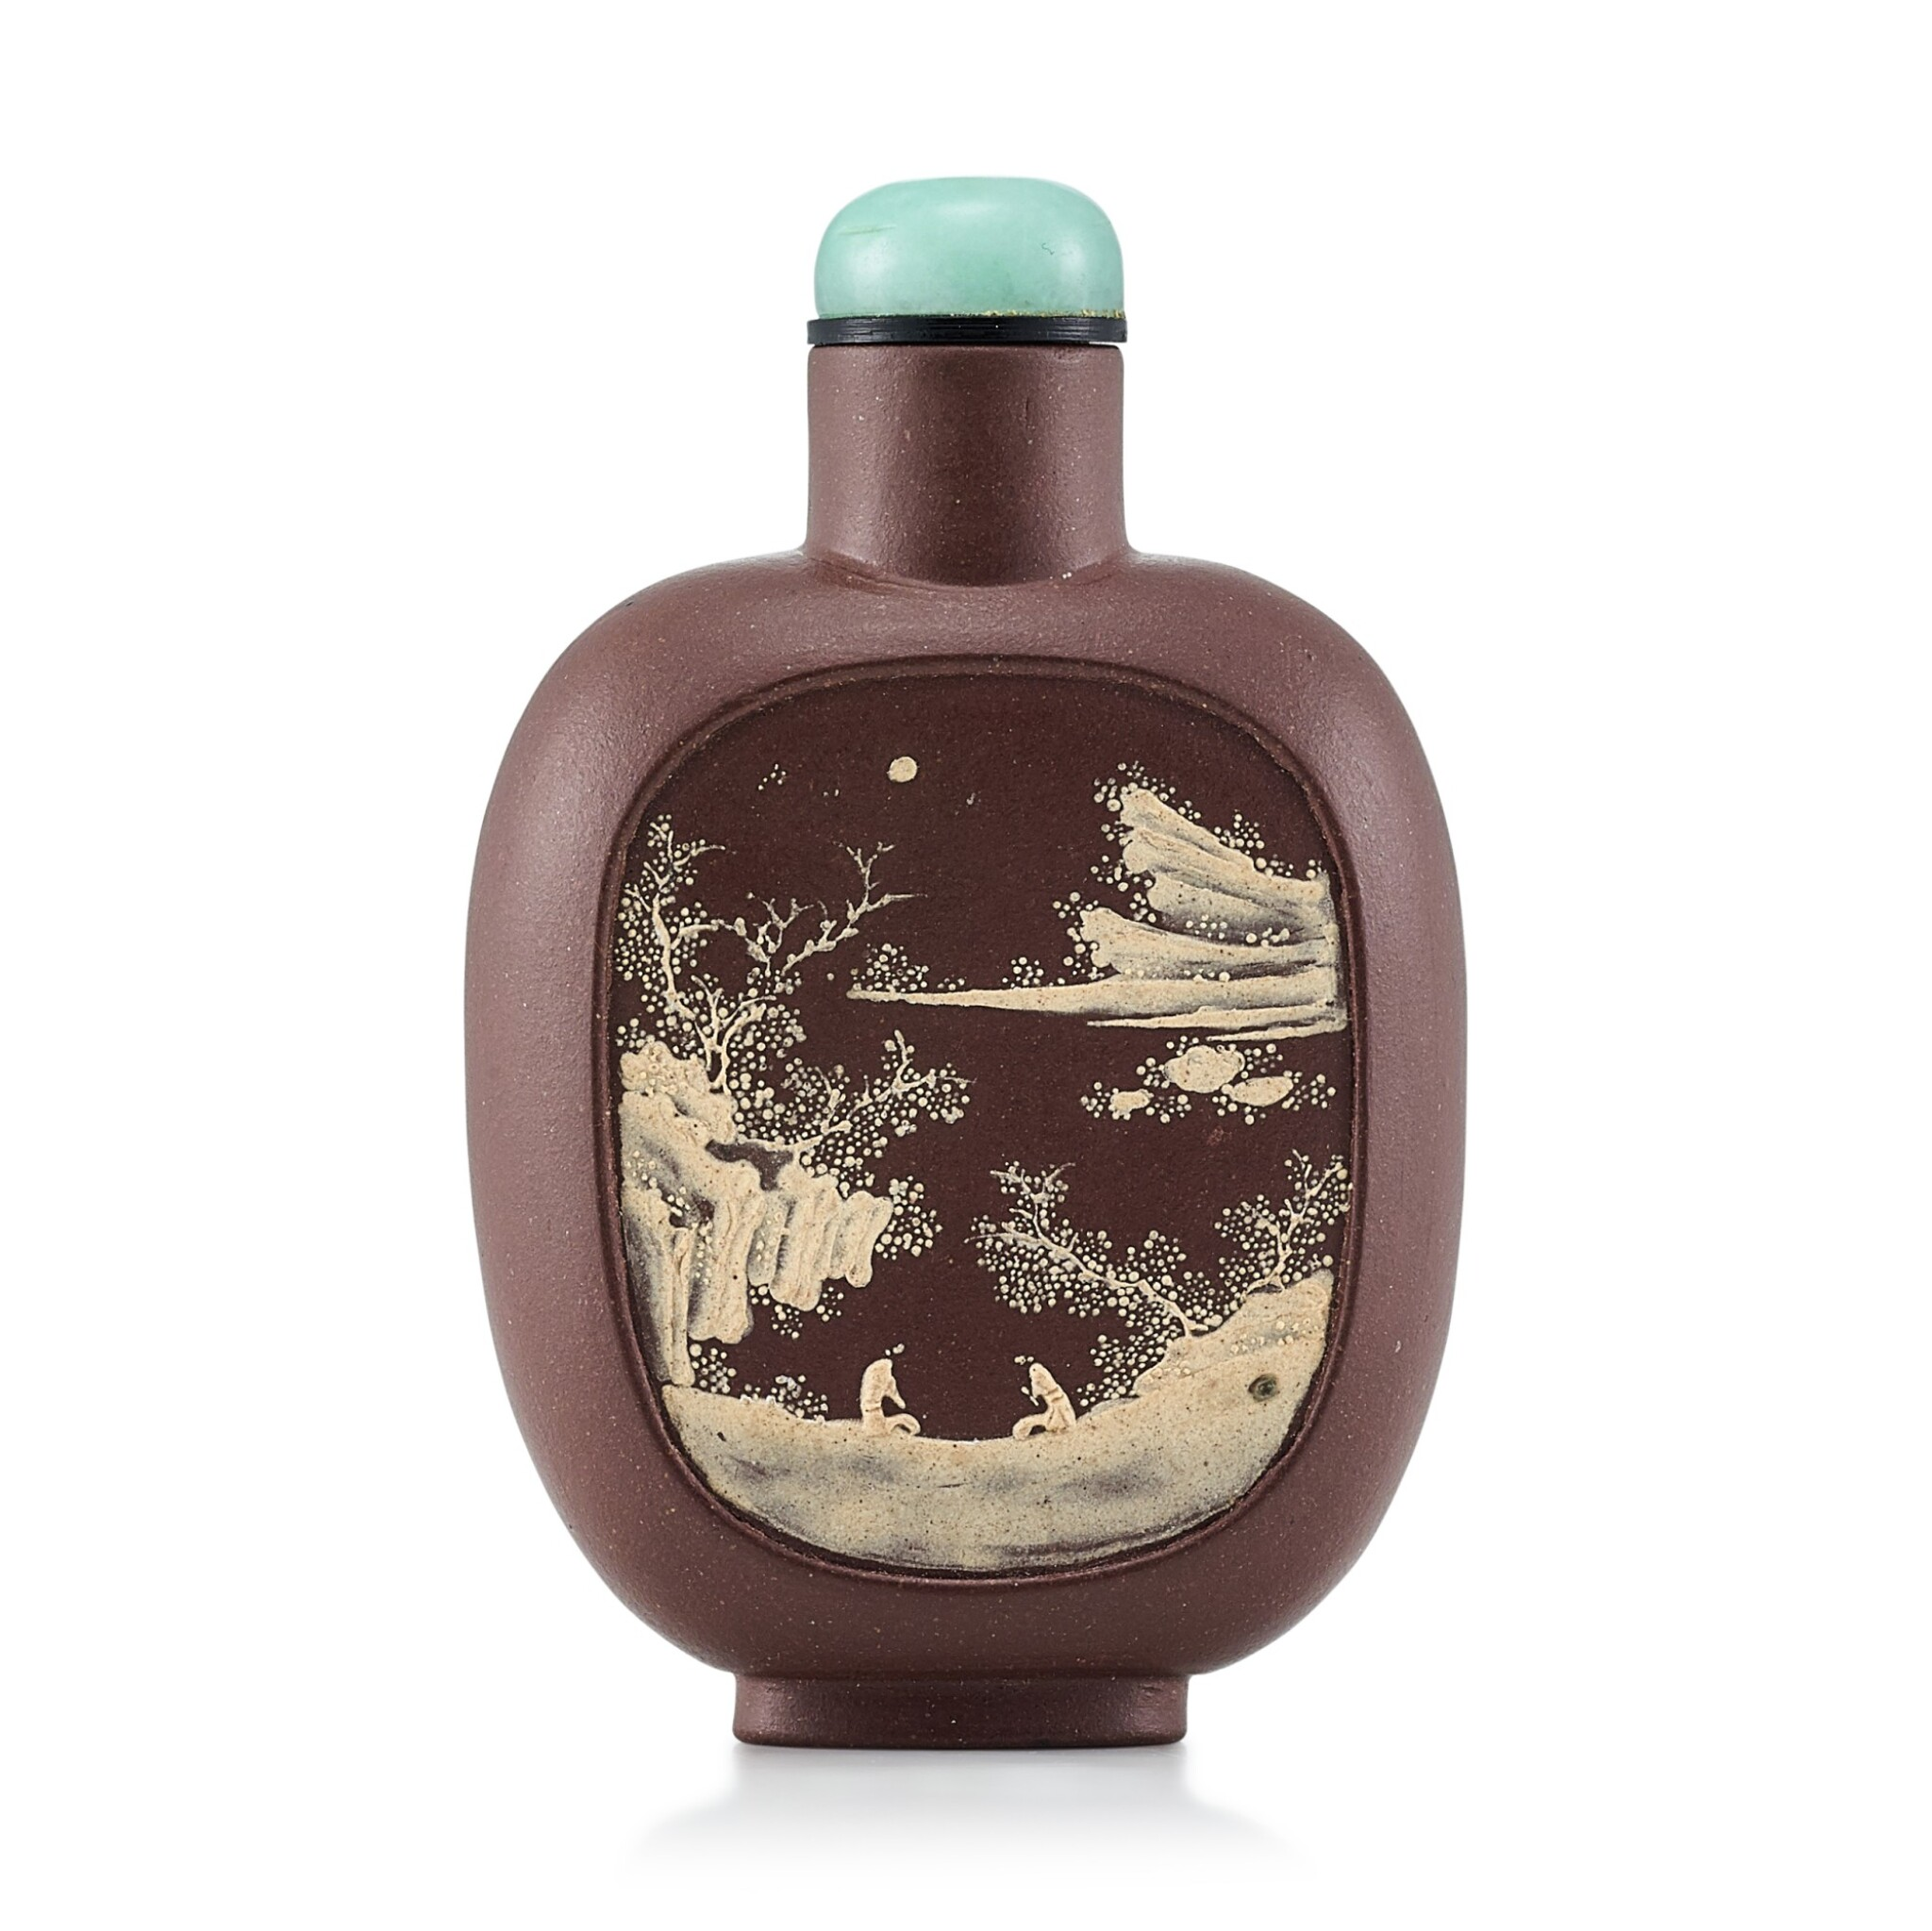 View full screen - View 1 of Lot 3059. An Yixing Slip-Decorated 'Landscape' Snuff Bottle Qing Dynasty, 19th Century | 清十九世紀 宜興紫砂堆料加彩山水人物圖鼻煙壺.